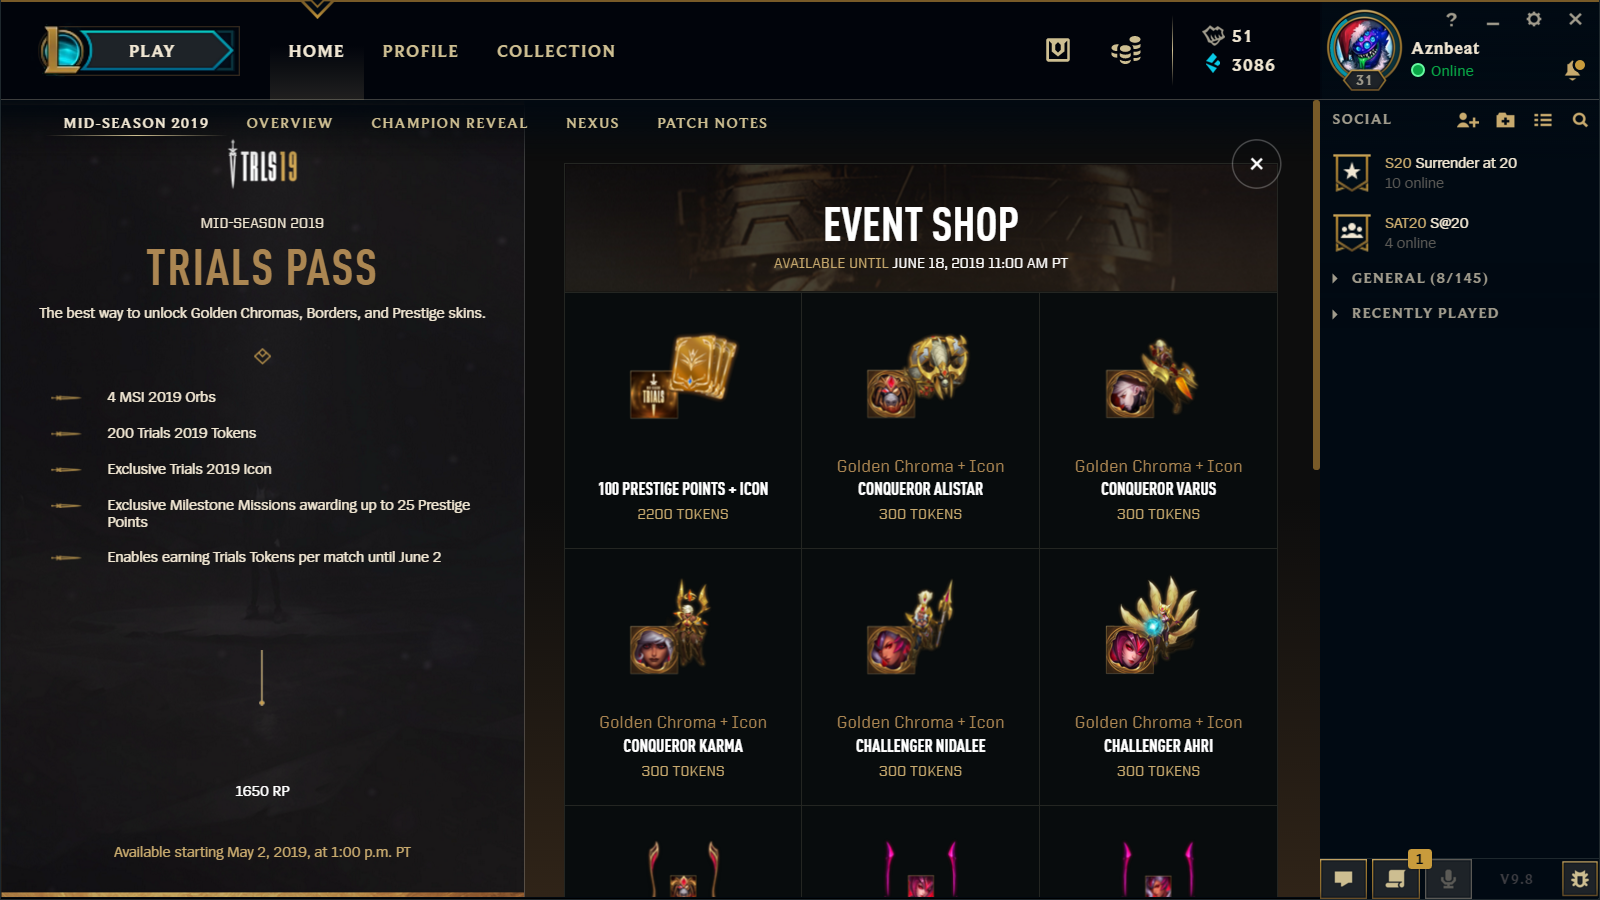 The new trials pass costs 1650 RP instead of the usual 1350